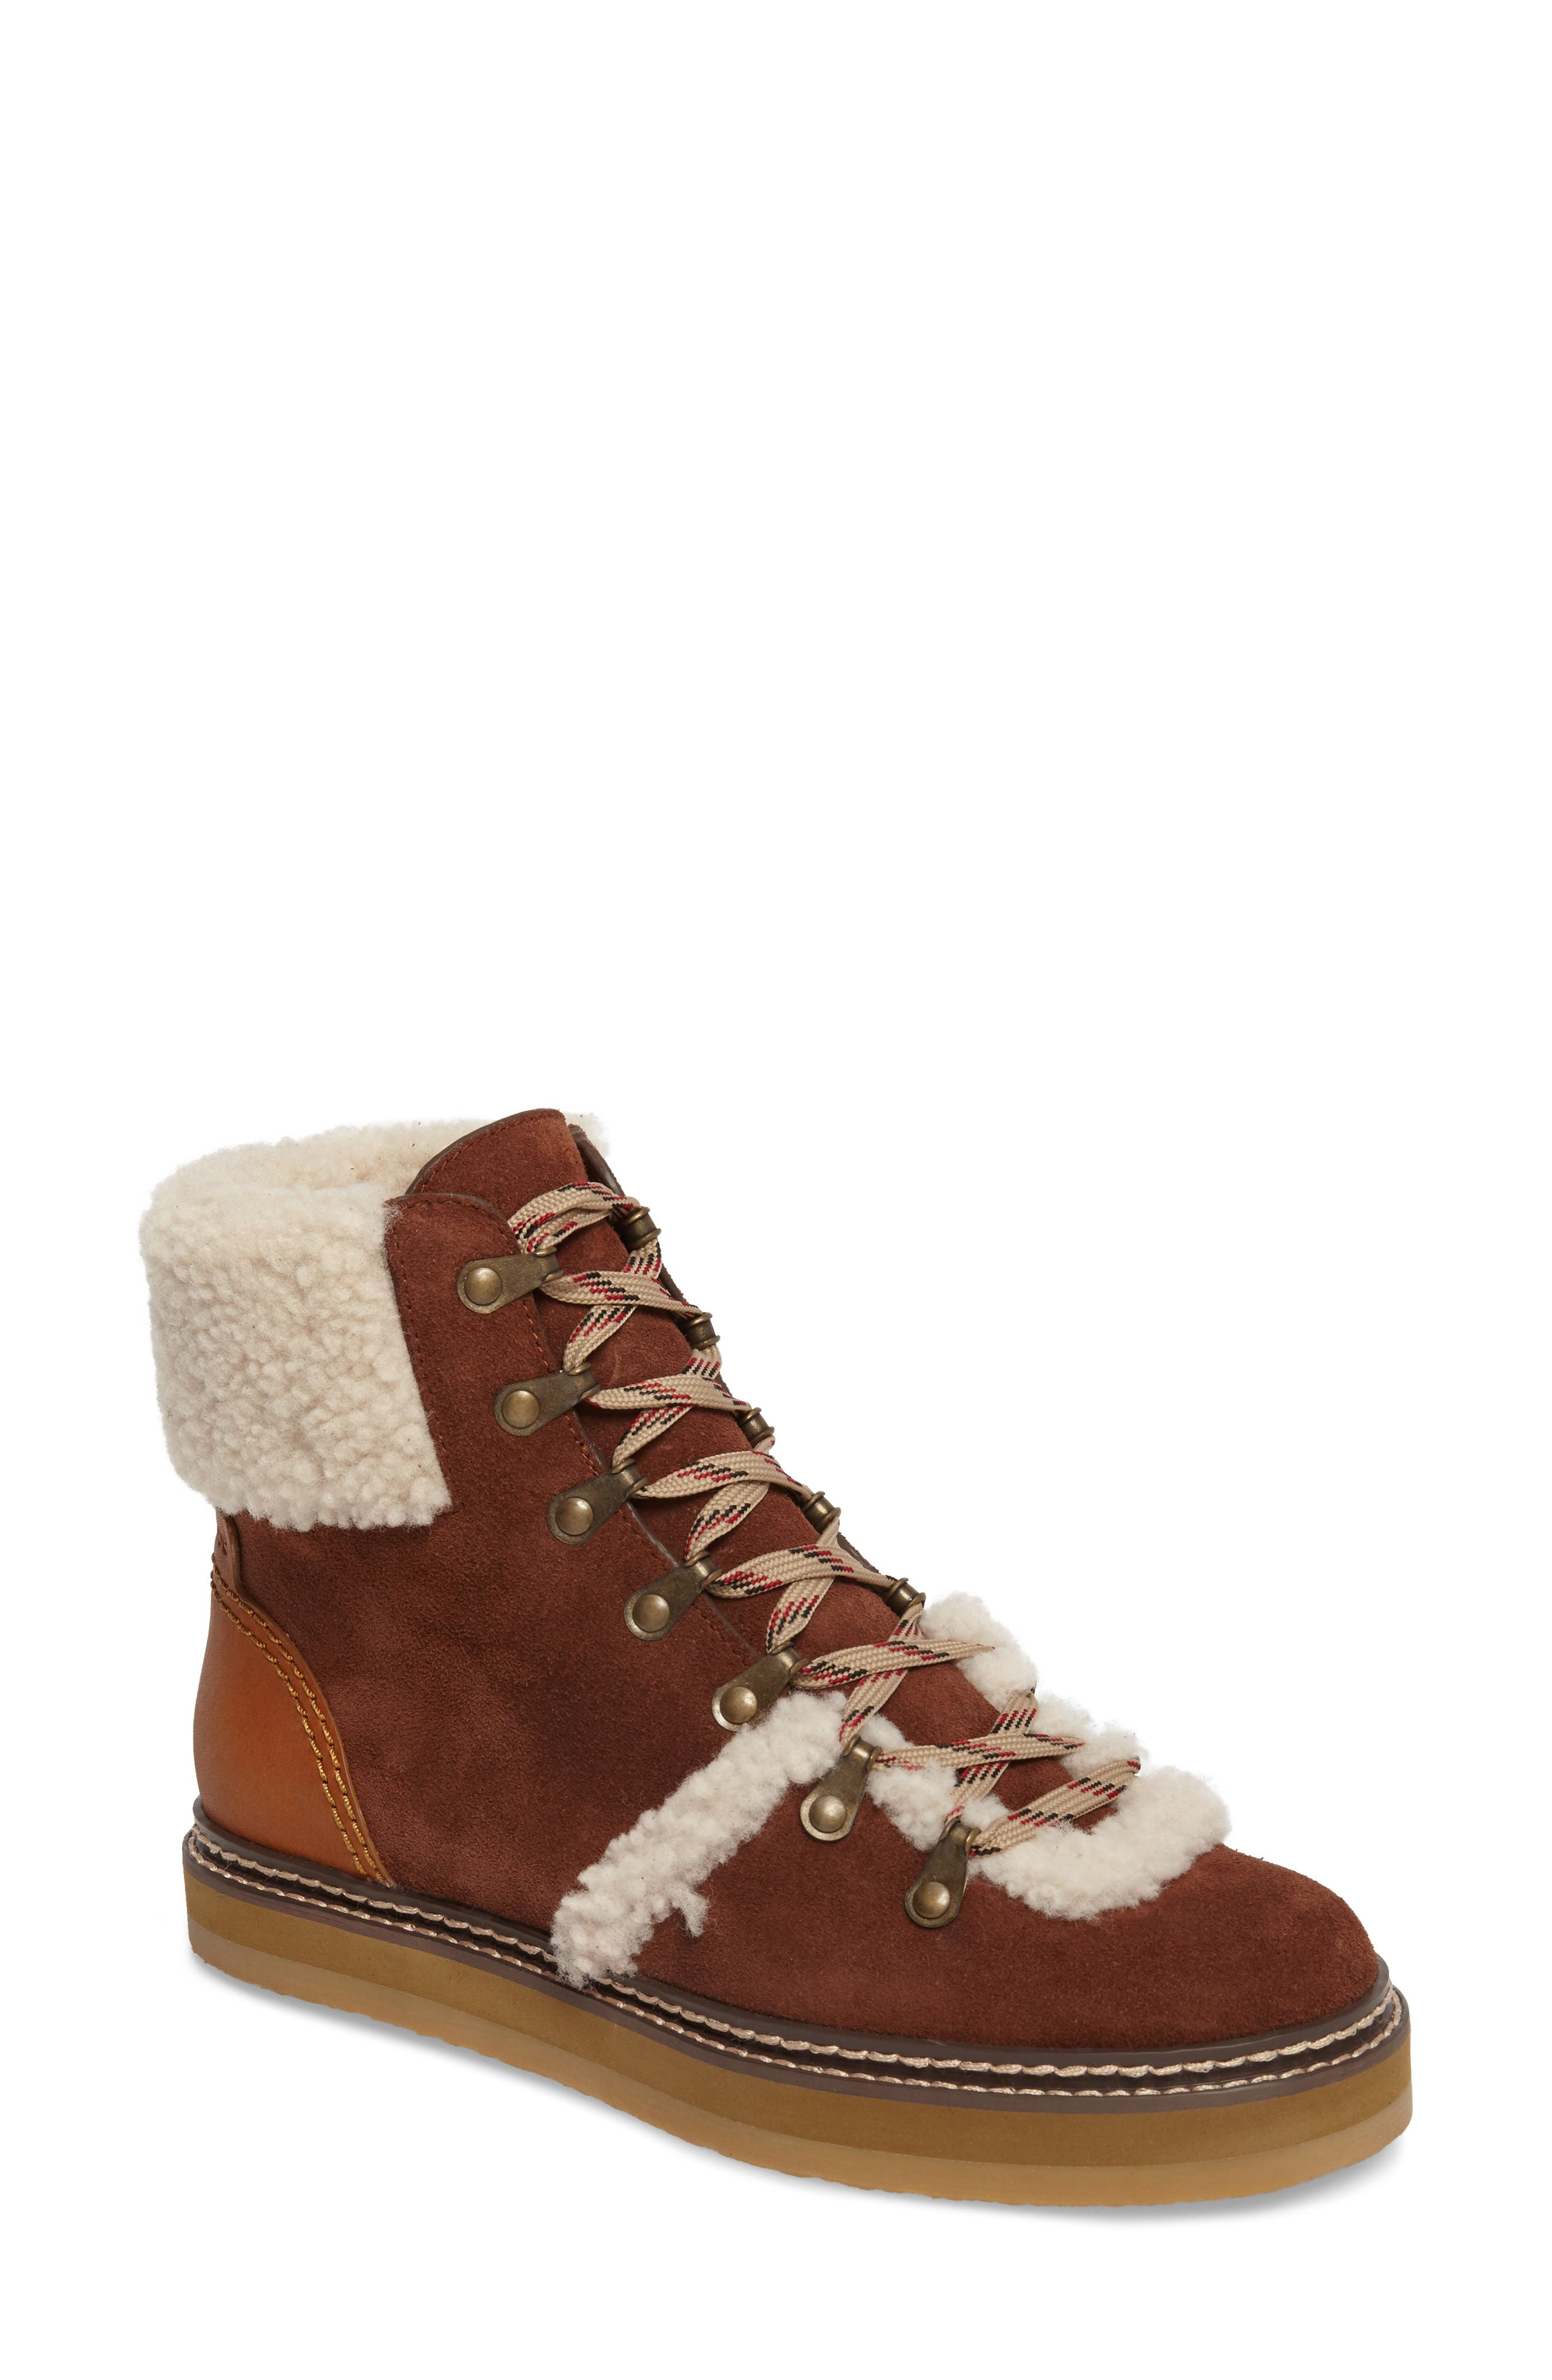 Alternate Image 1 Selected - See by Chloé 'Eileen' Genuine Shearling Boot